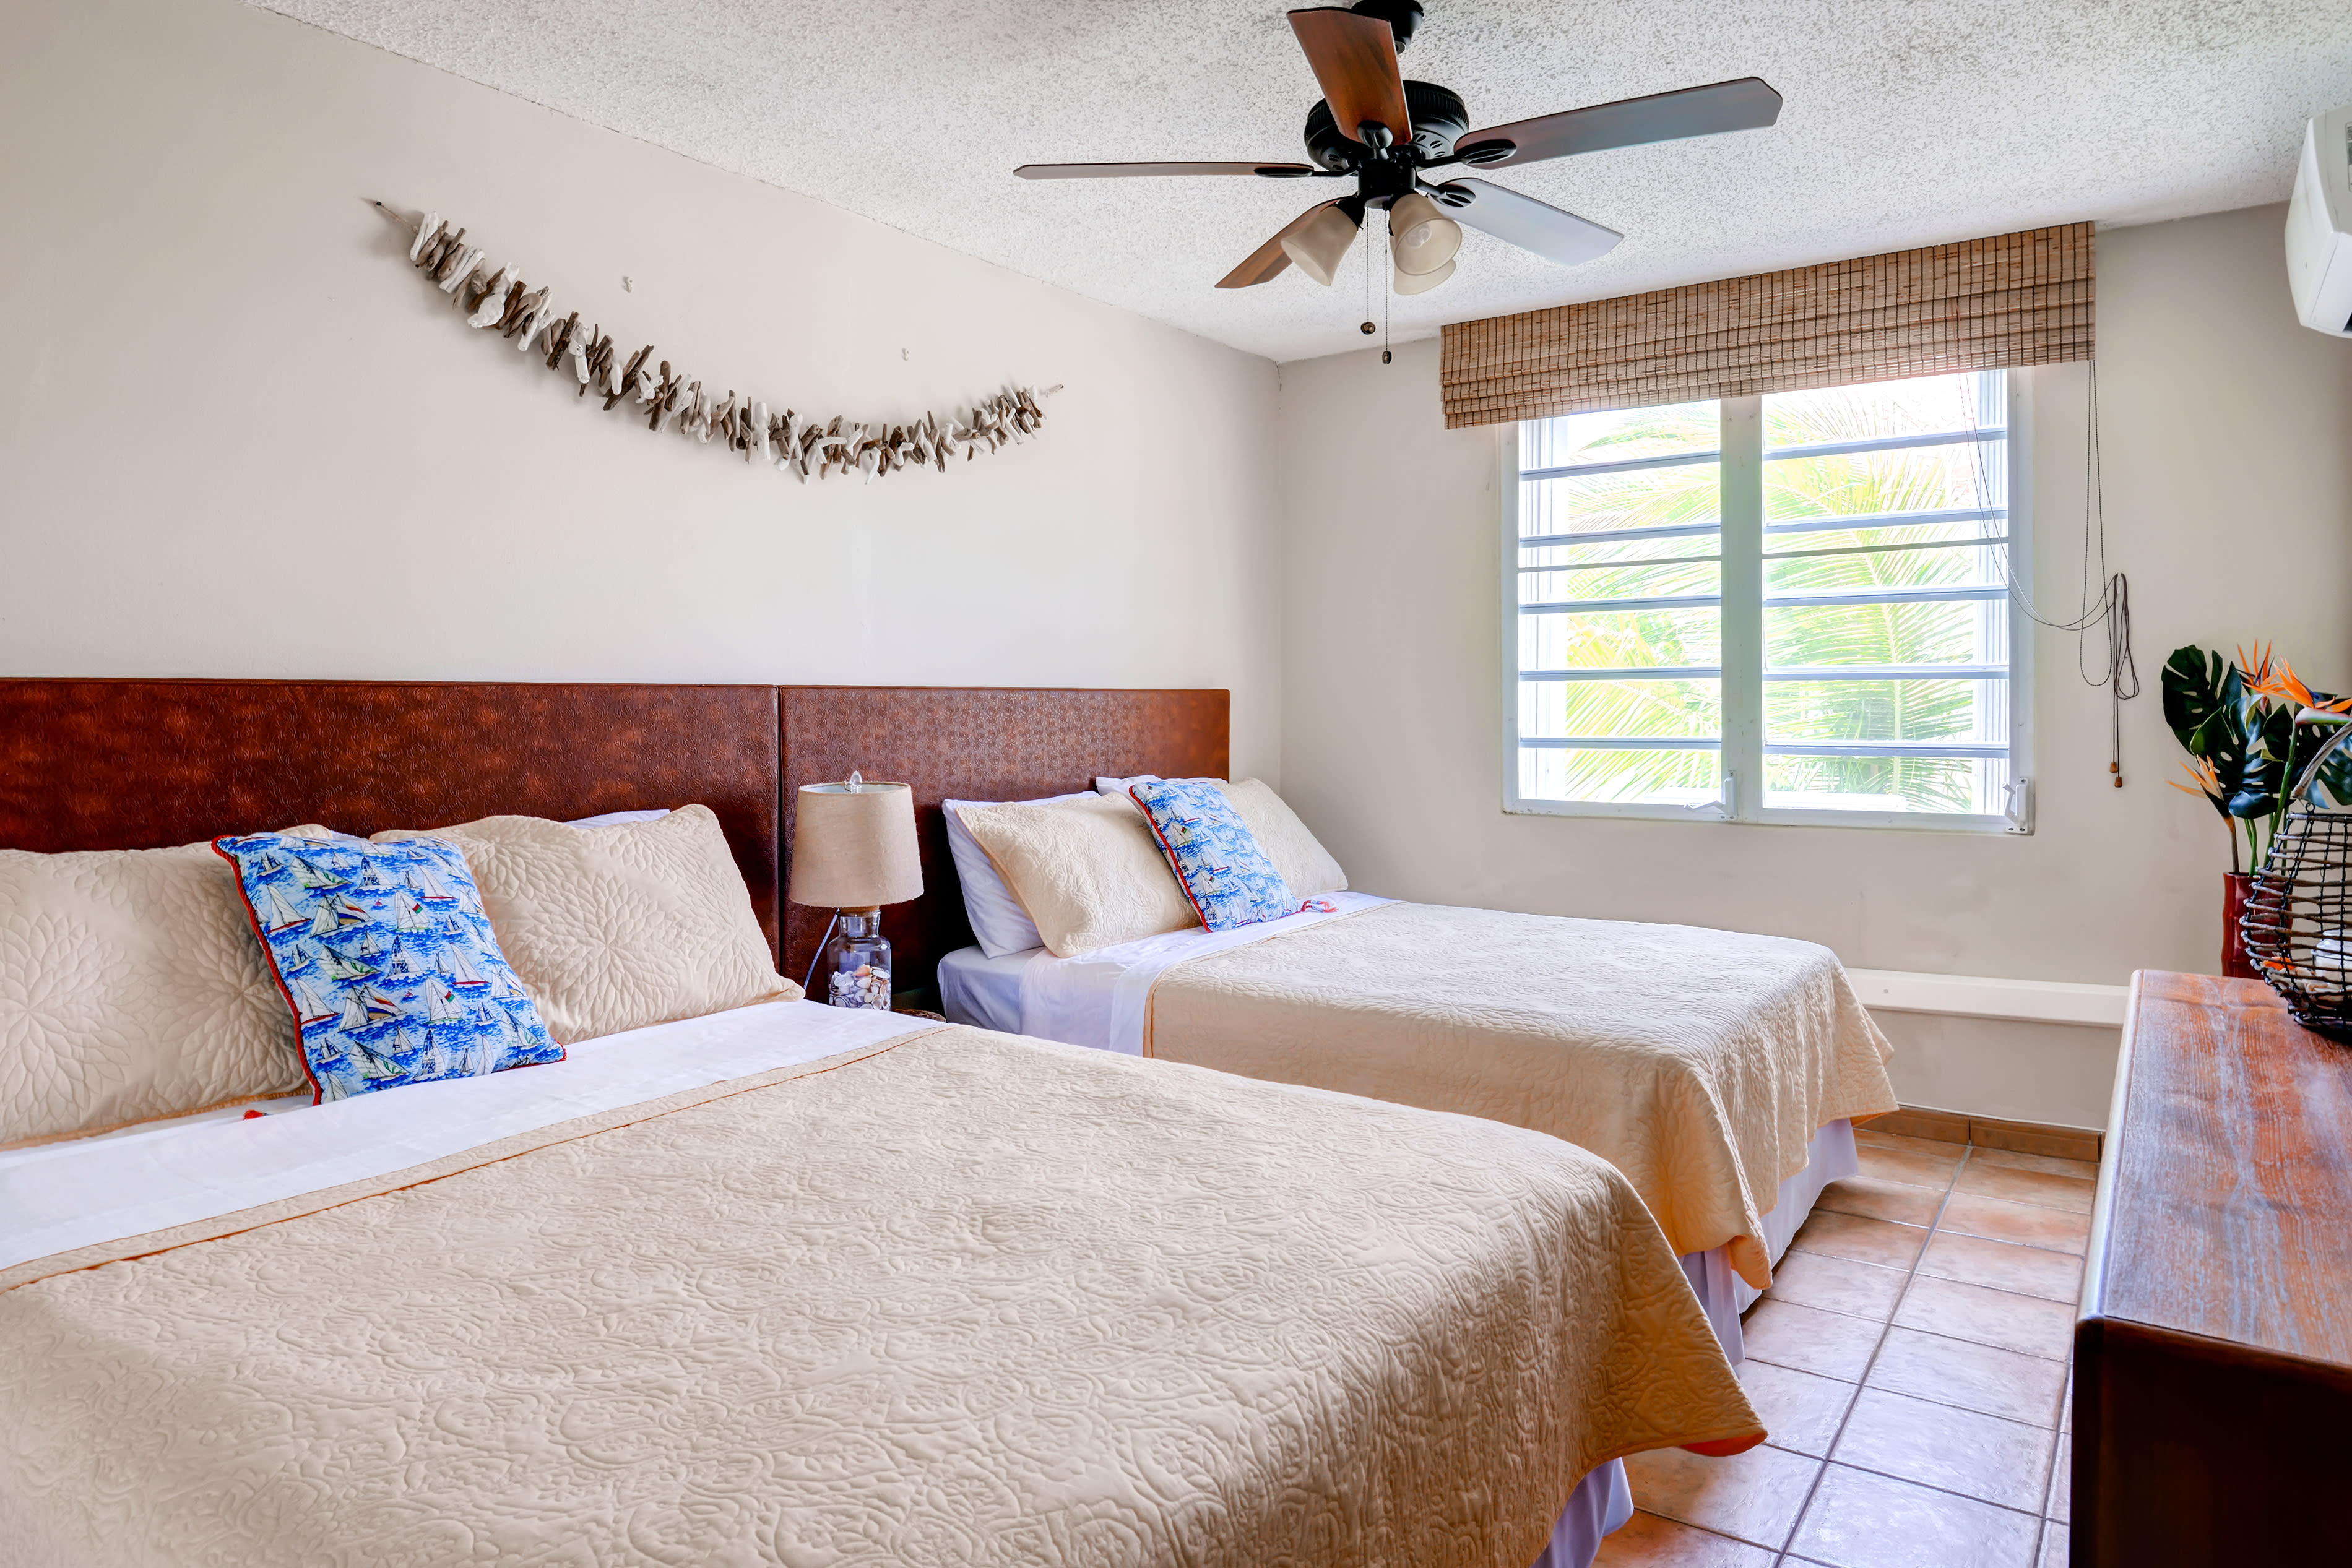 Bedroom 2 | Queen Bed | Full Bed | Linens Provided